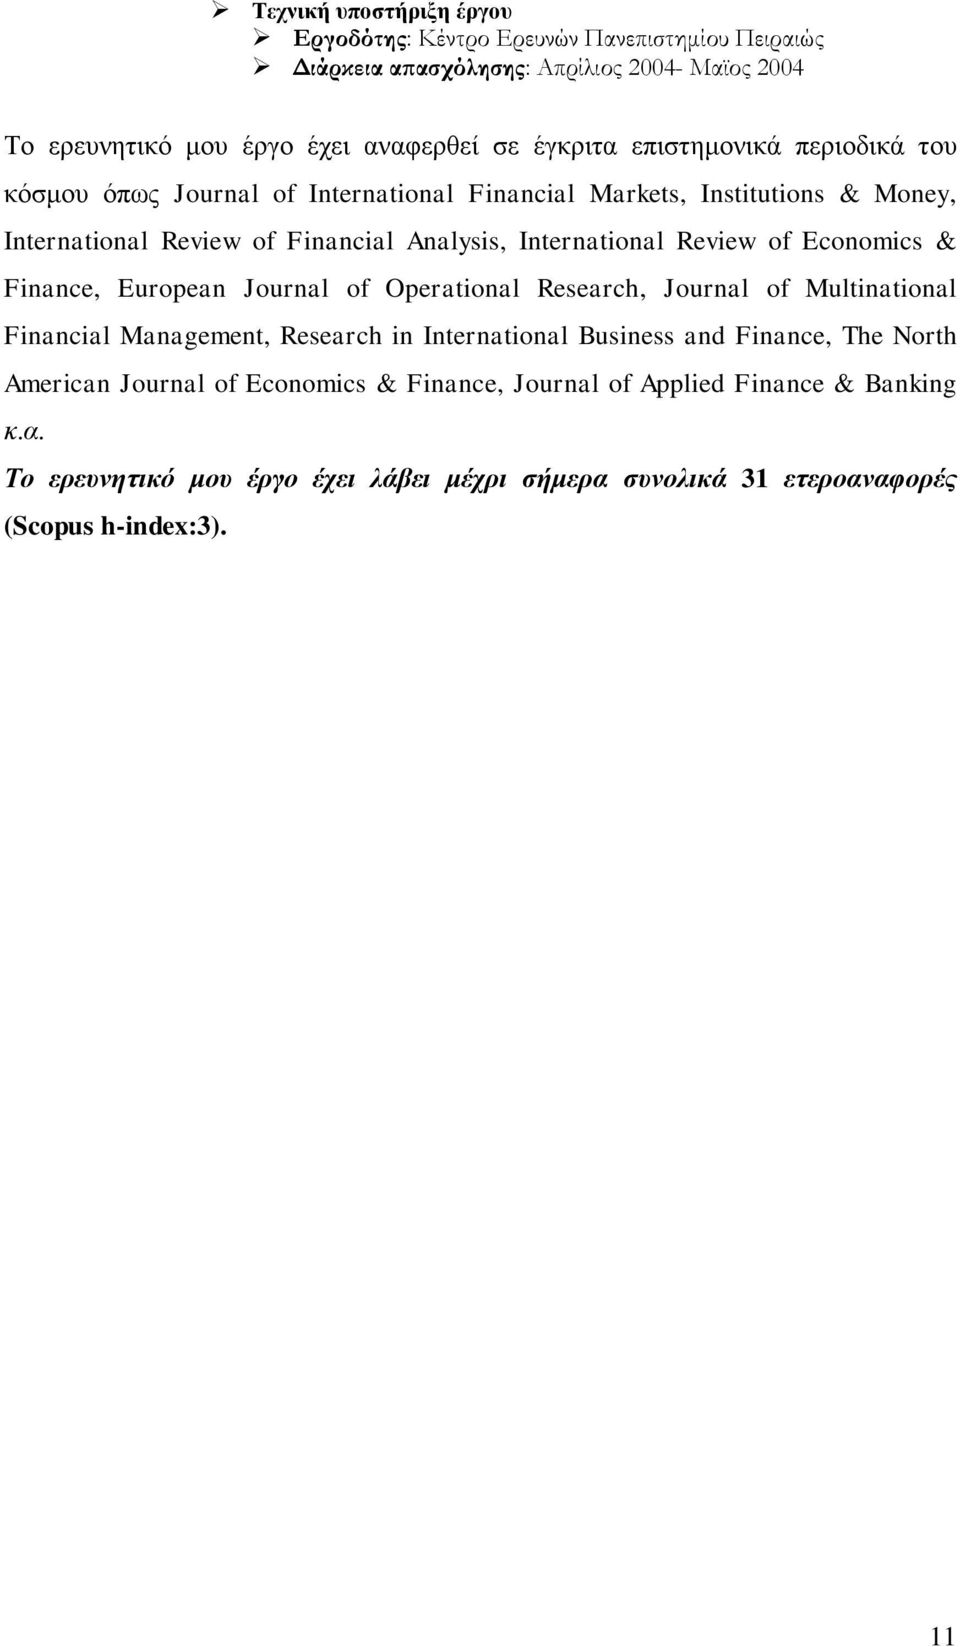 Economics & Finance, European Journal of Operational Research, Journal of Multinational Financial Management, Research in International Business and Finance, The North